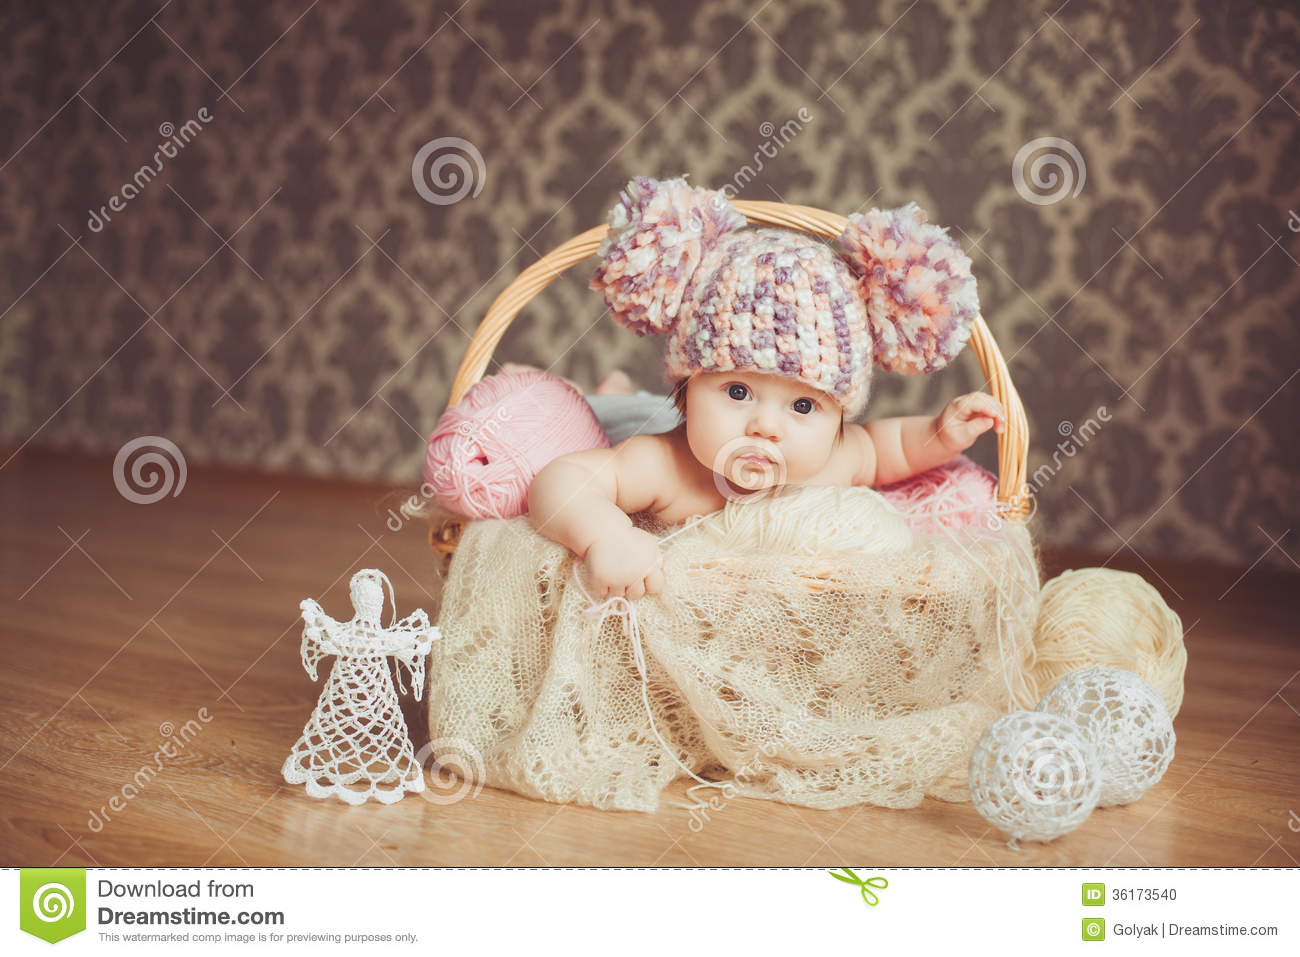 Sweet Little Girl Hd Wallpaper Adorable Smiling Newborn Baby Girl Lies In Basket Stock